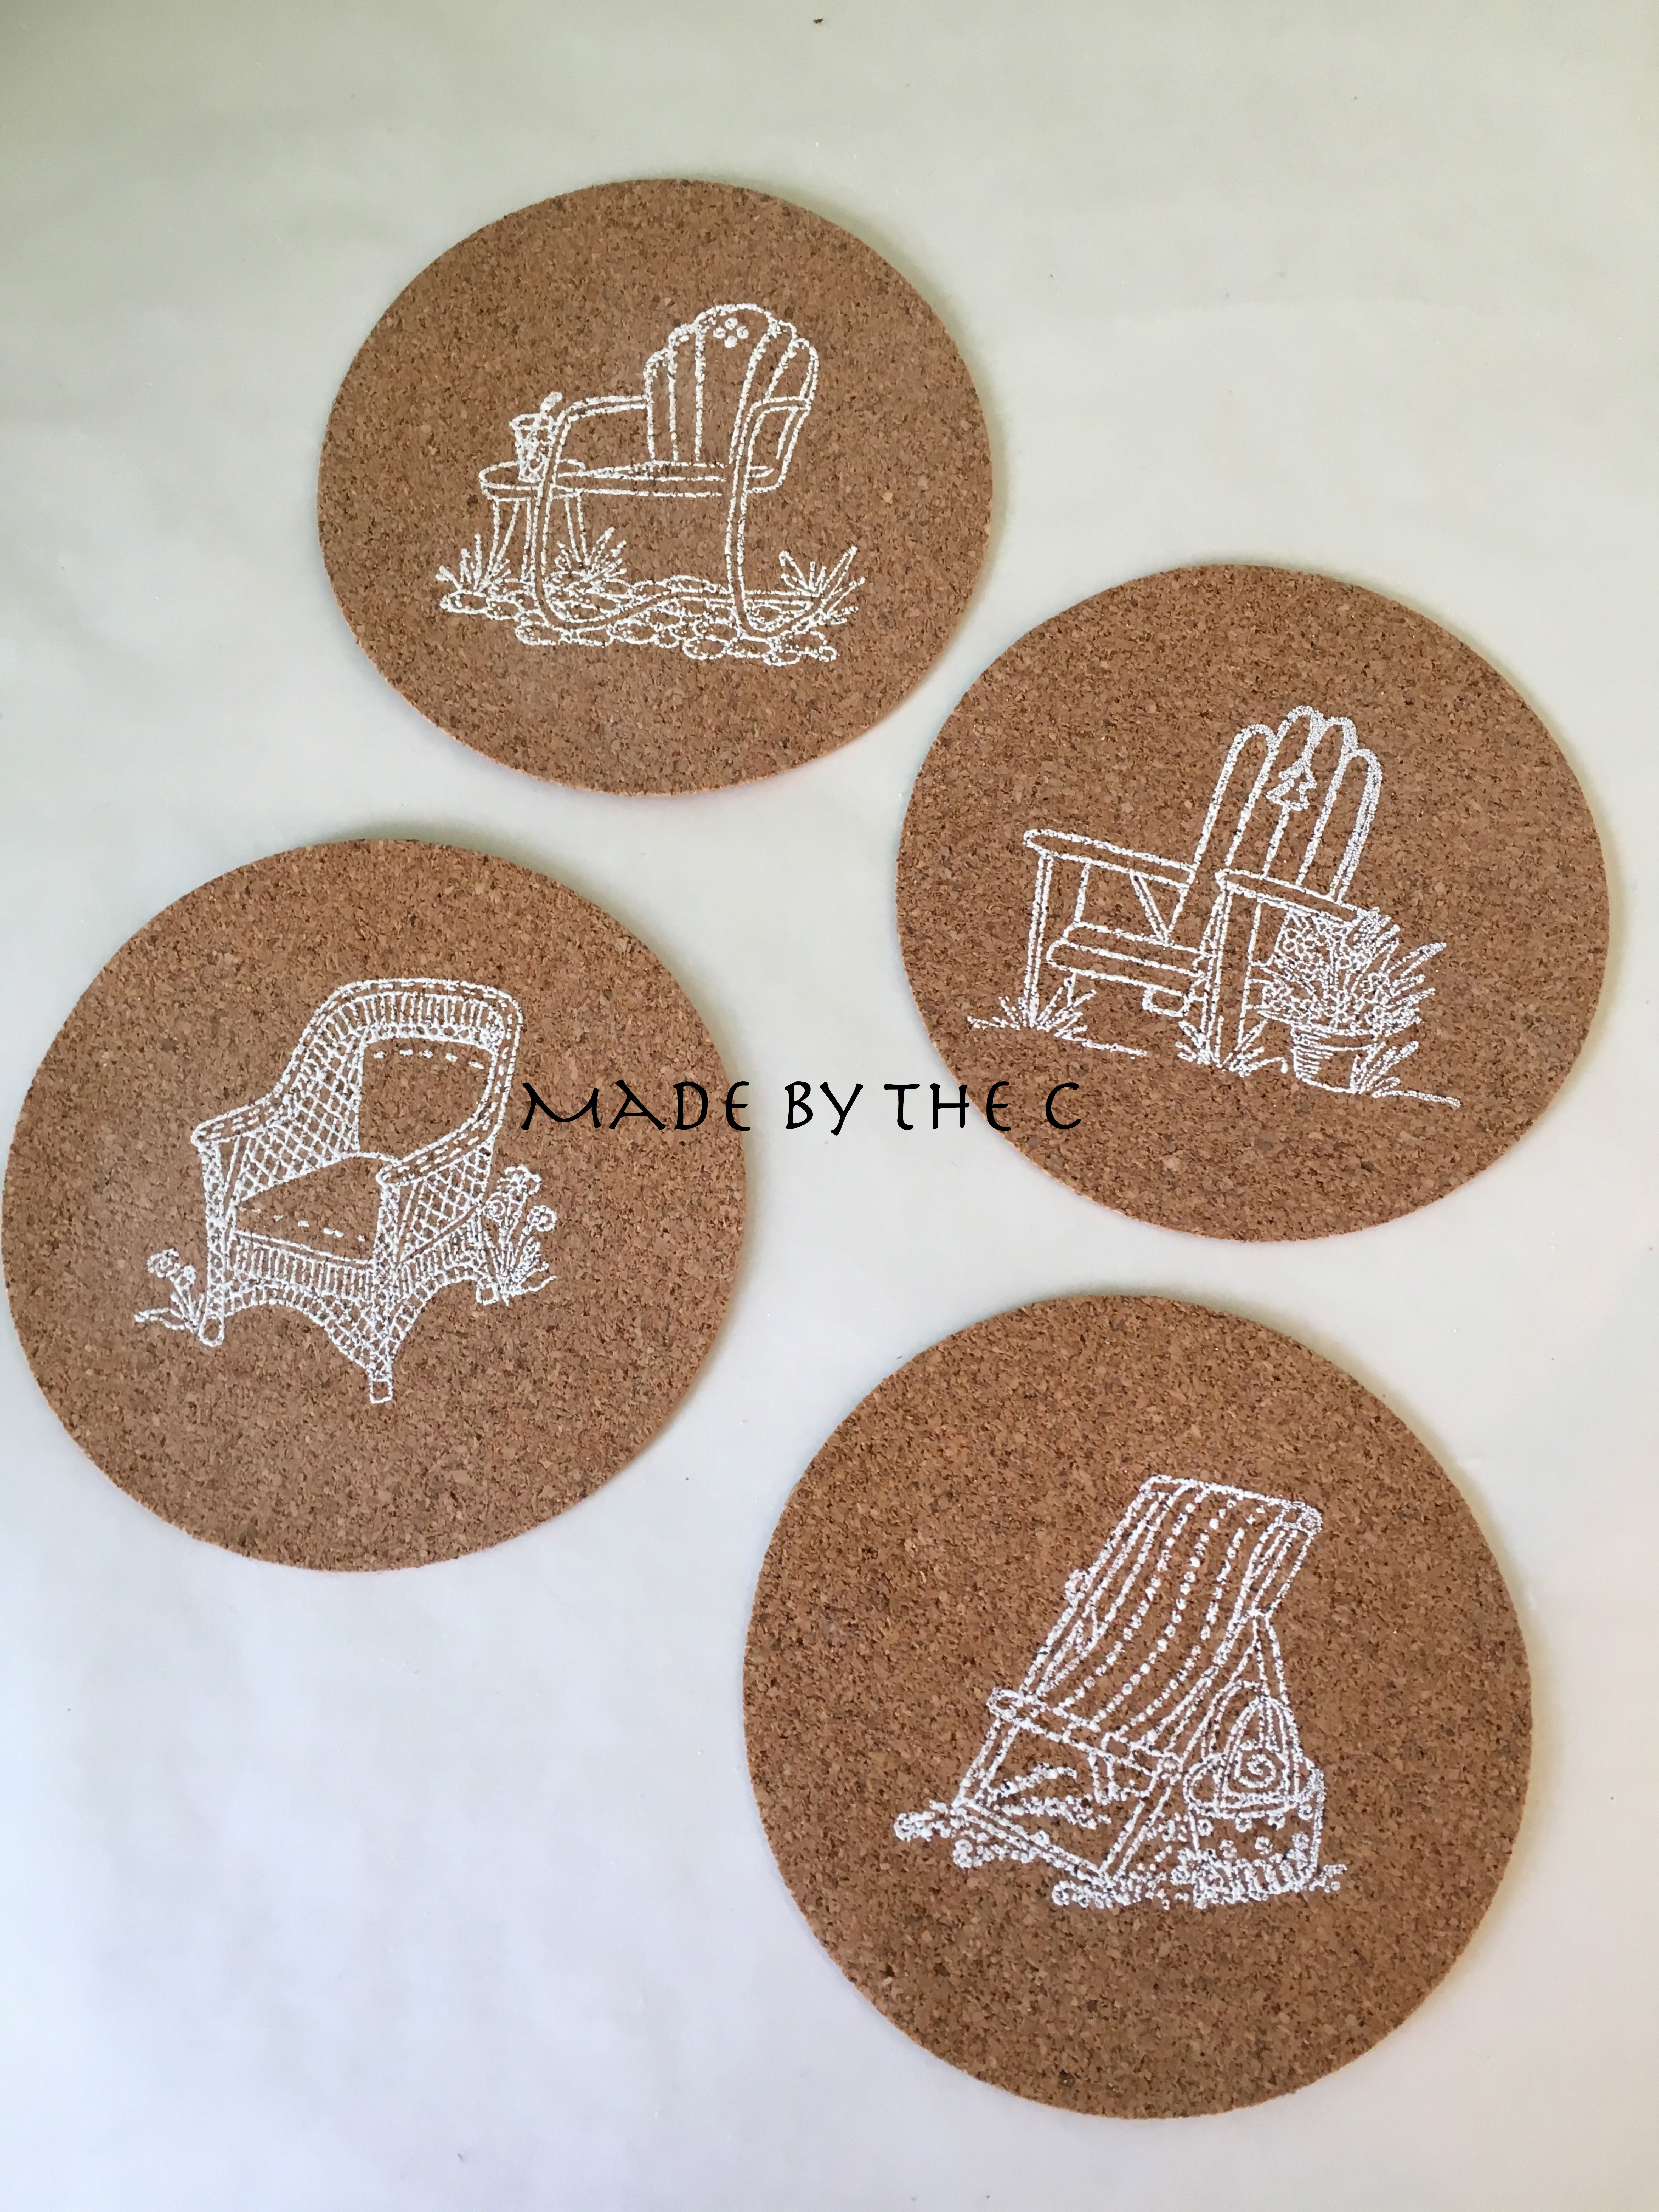 Embossing on cork_1.jpg